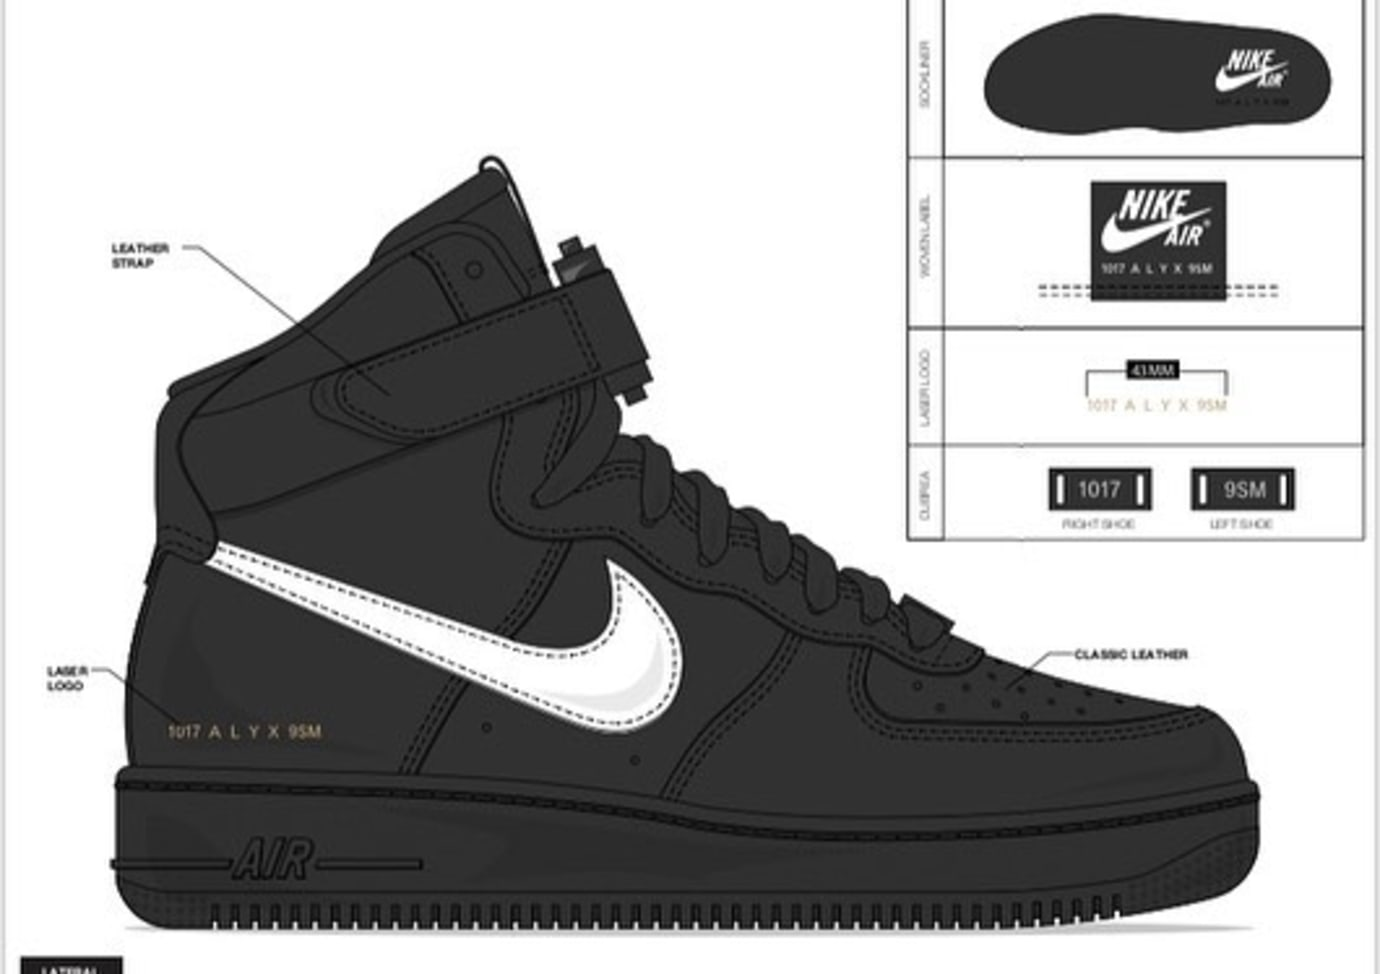 Alyx x Nike Air Force 1 'Black/White'